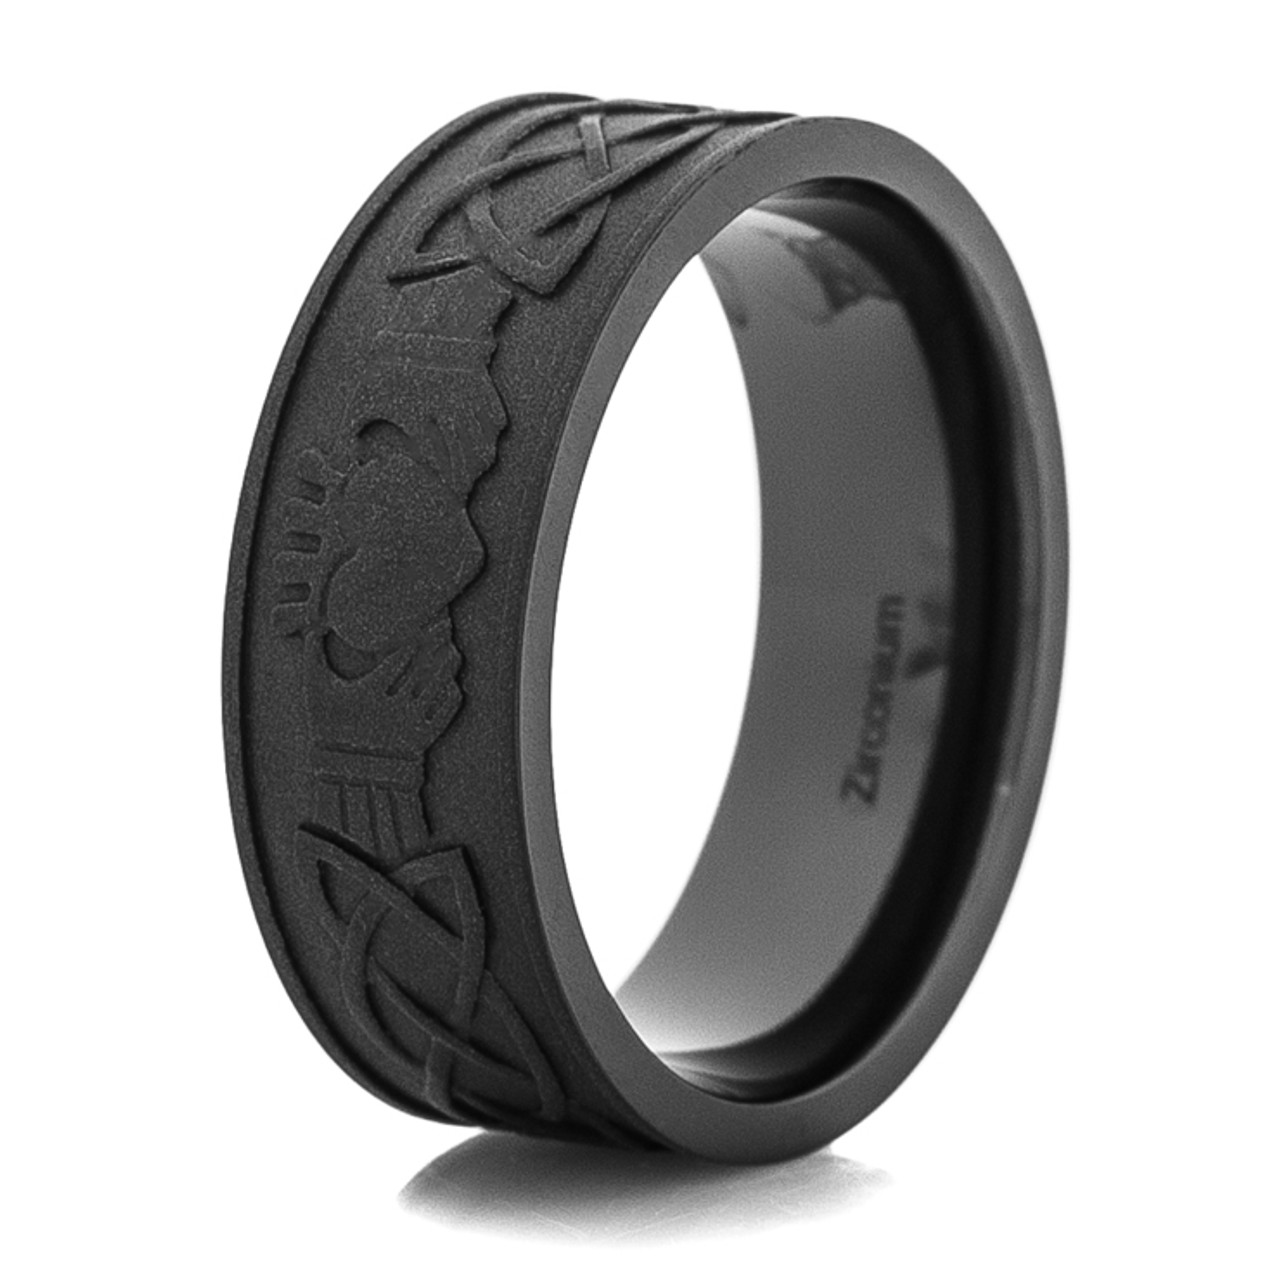 Best Silicone Weding Rings 06 - Best Silicone Weding Rings